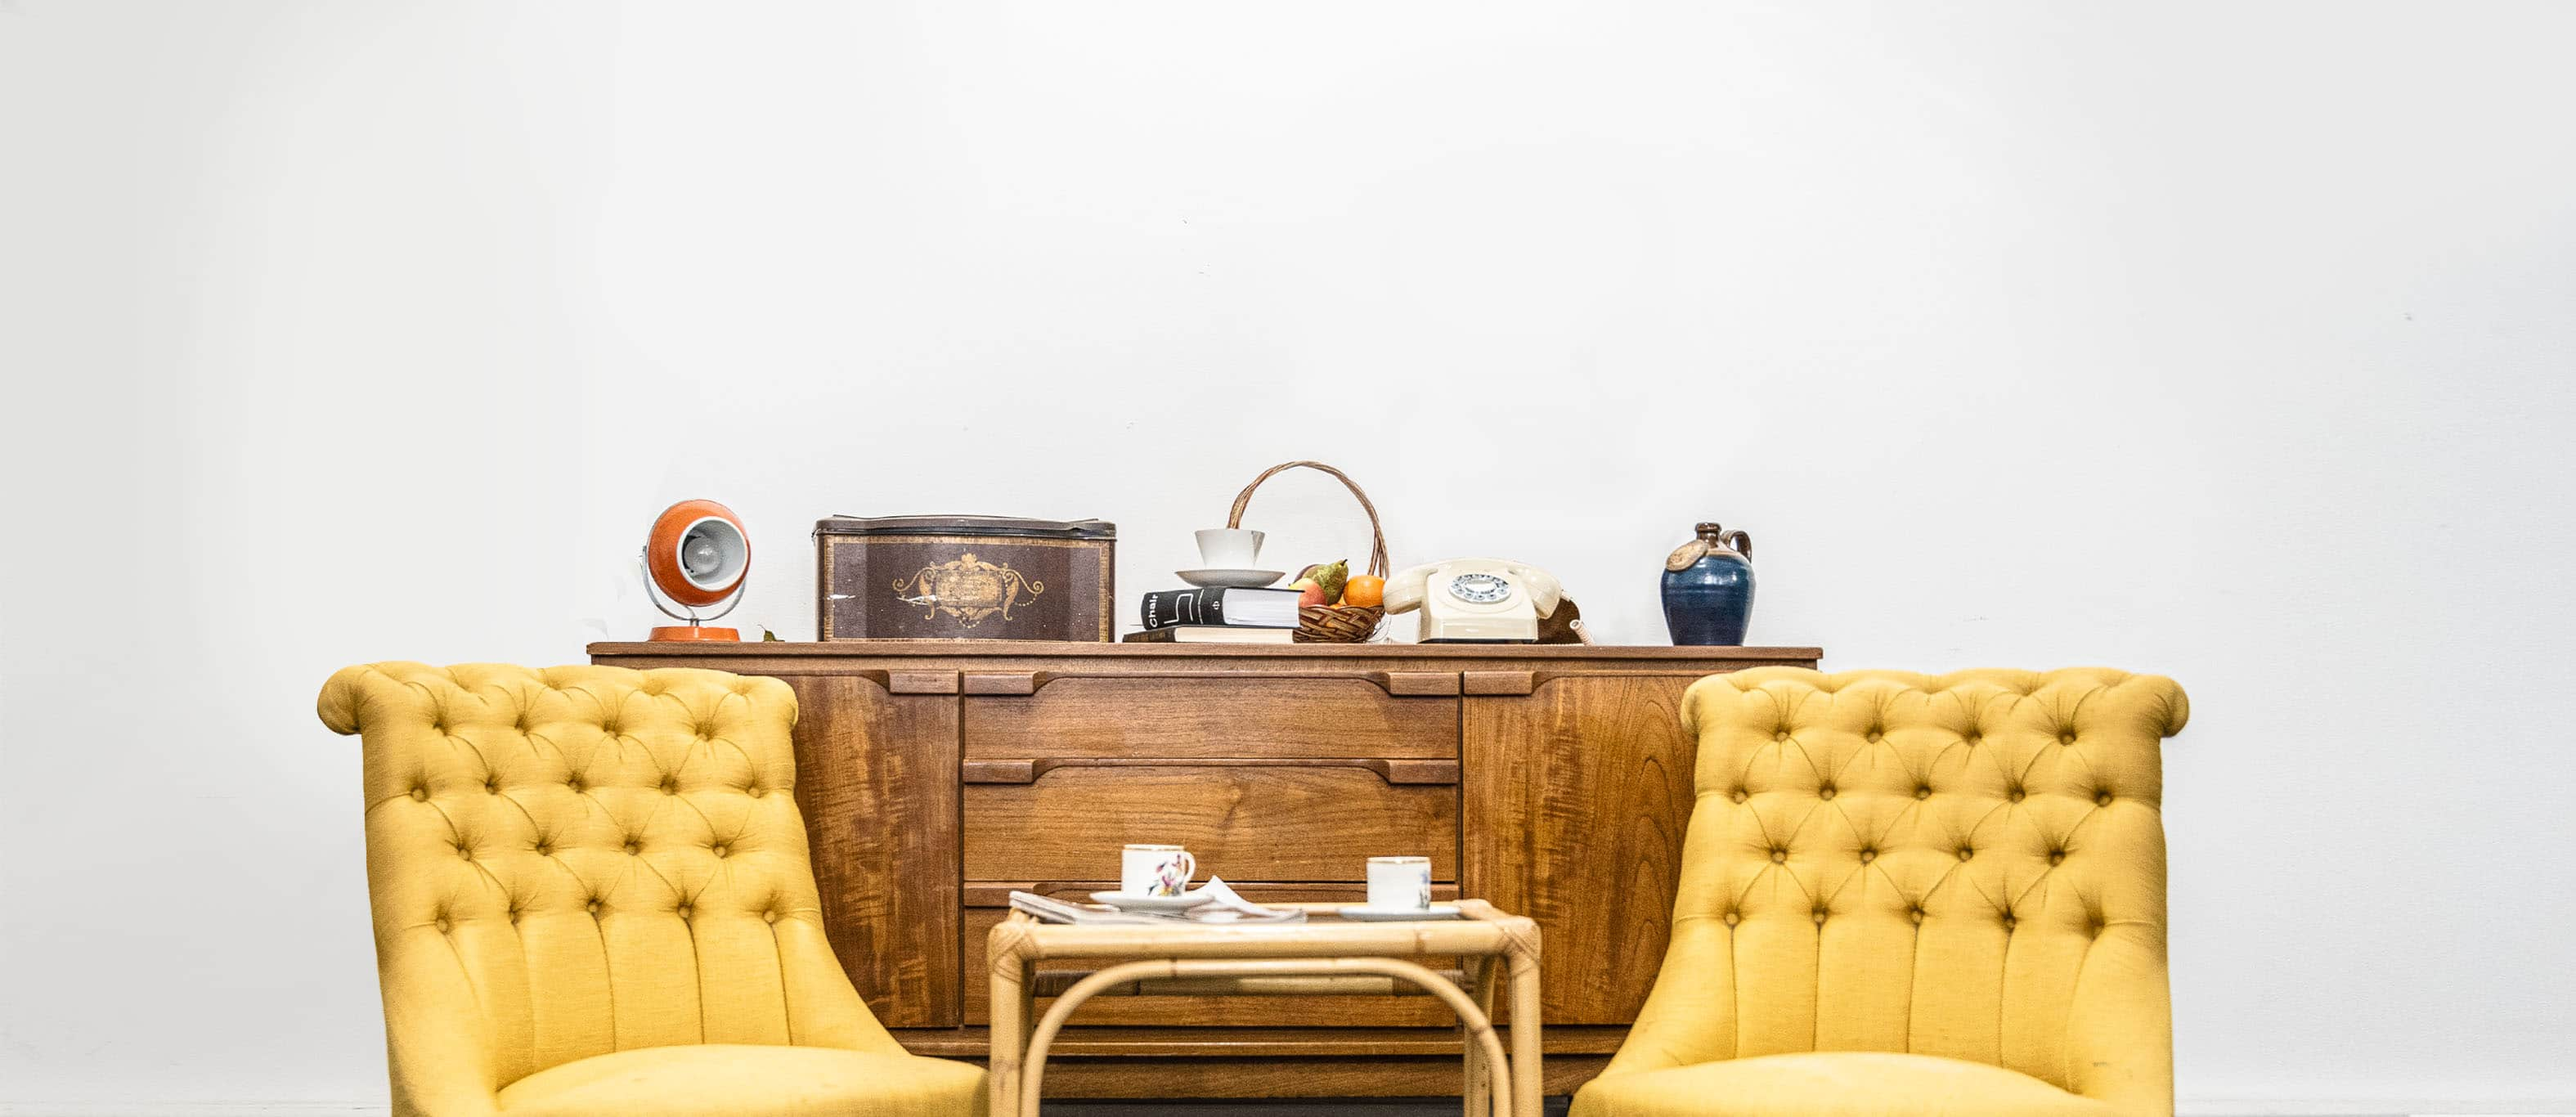 Two yellow chairs and a sideboard